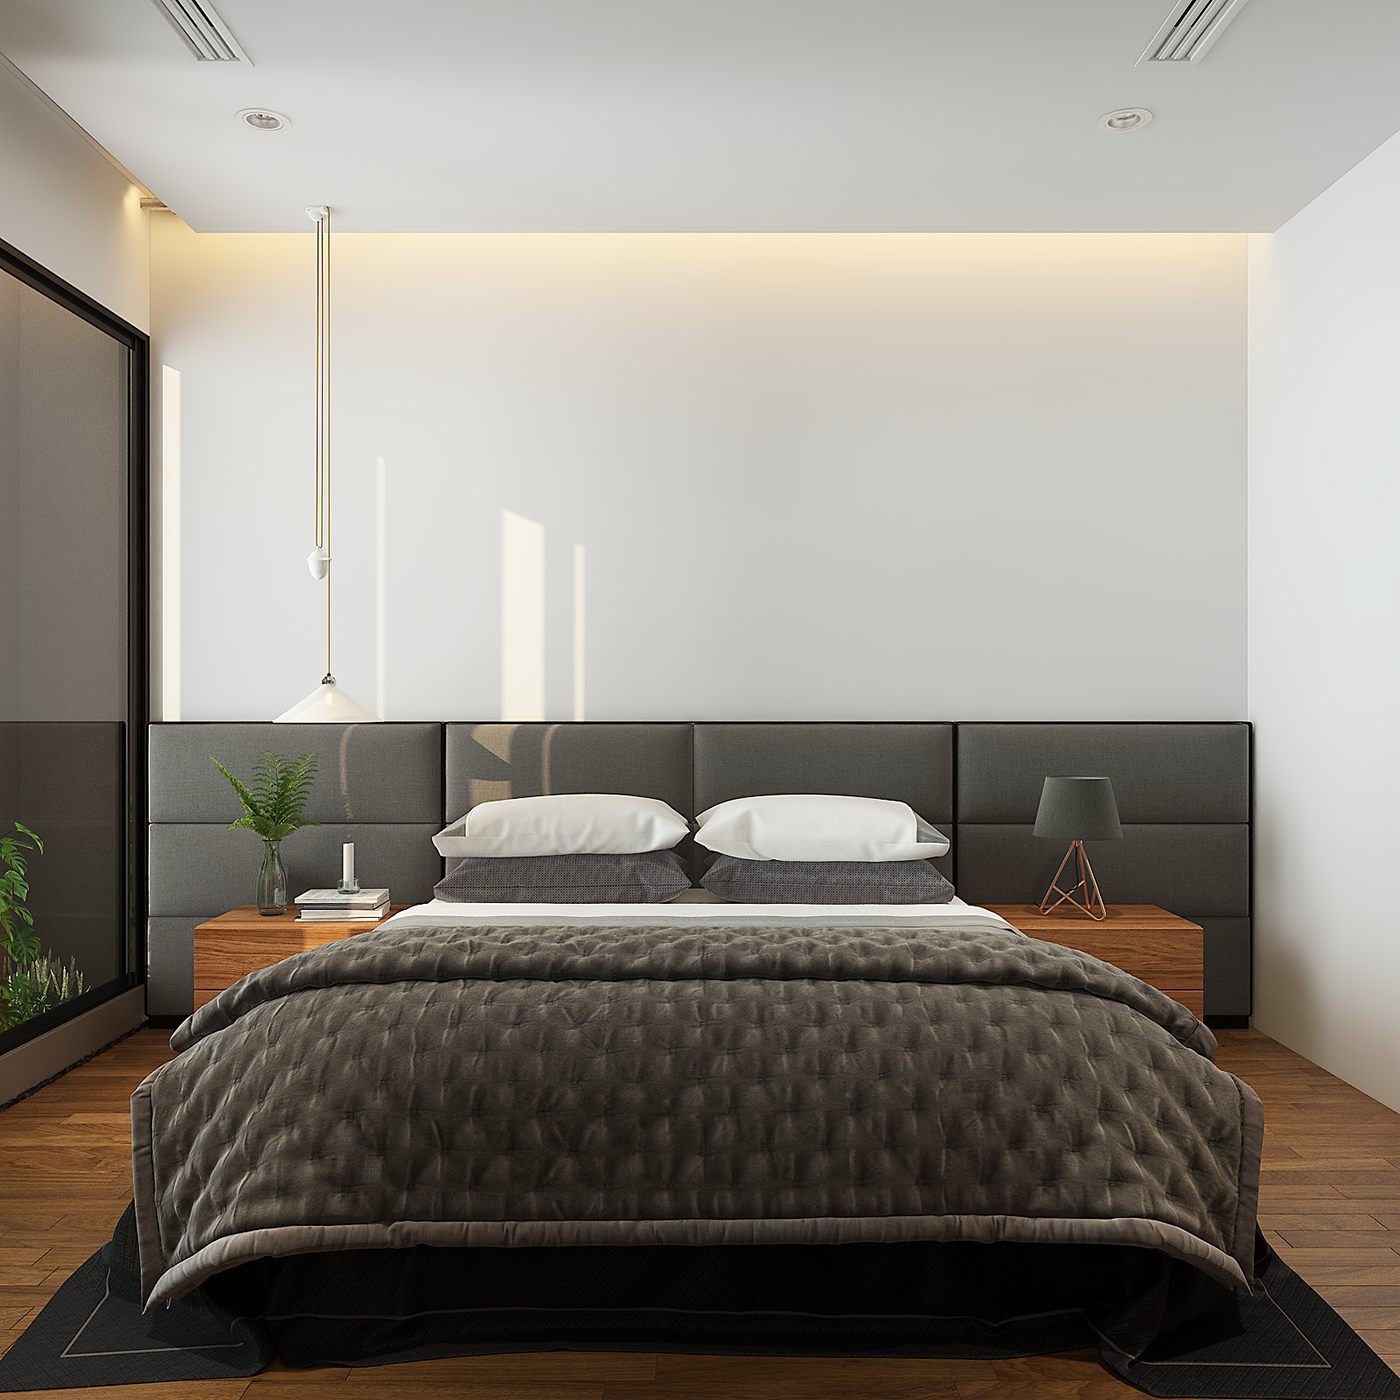 hp haus interior design on behance. Black Bedroom Furniture Sets. Home Design Ideas